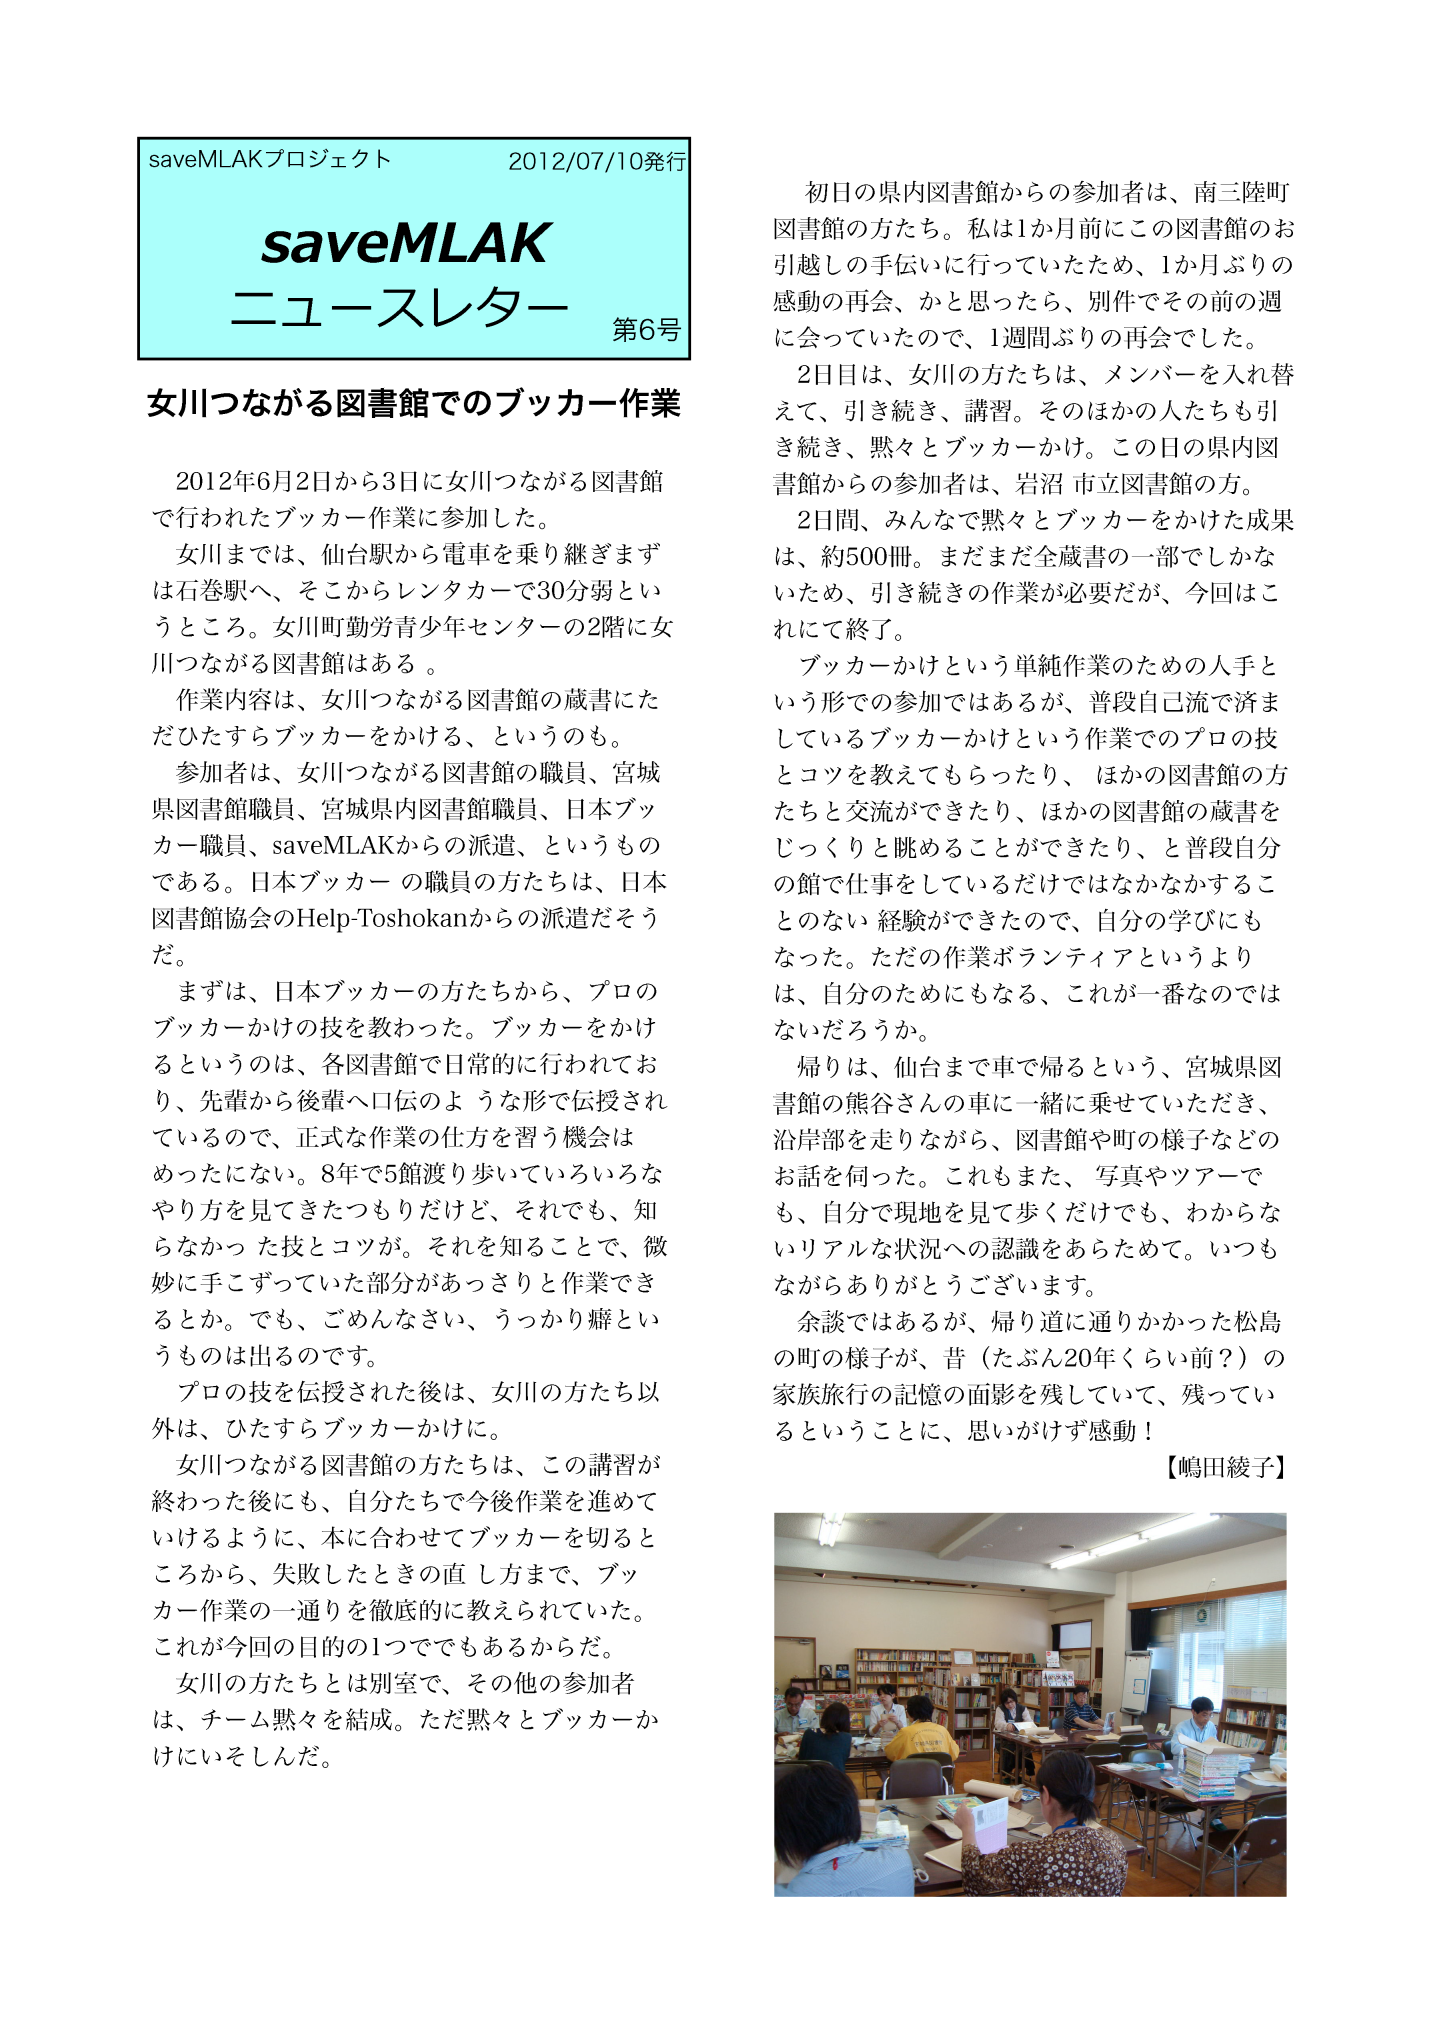 saveMLAK-newsletter-201207 p1.png